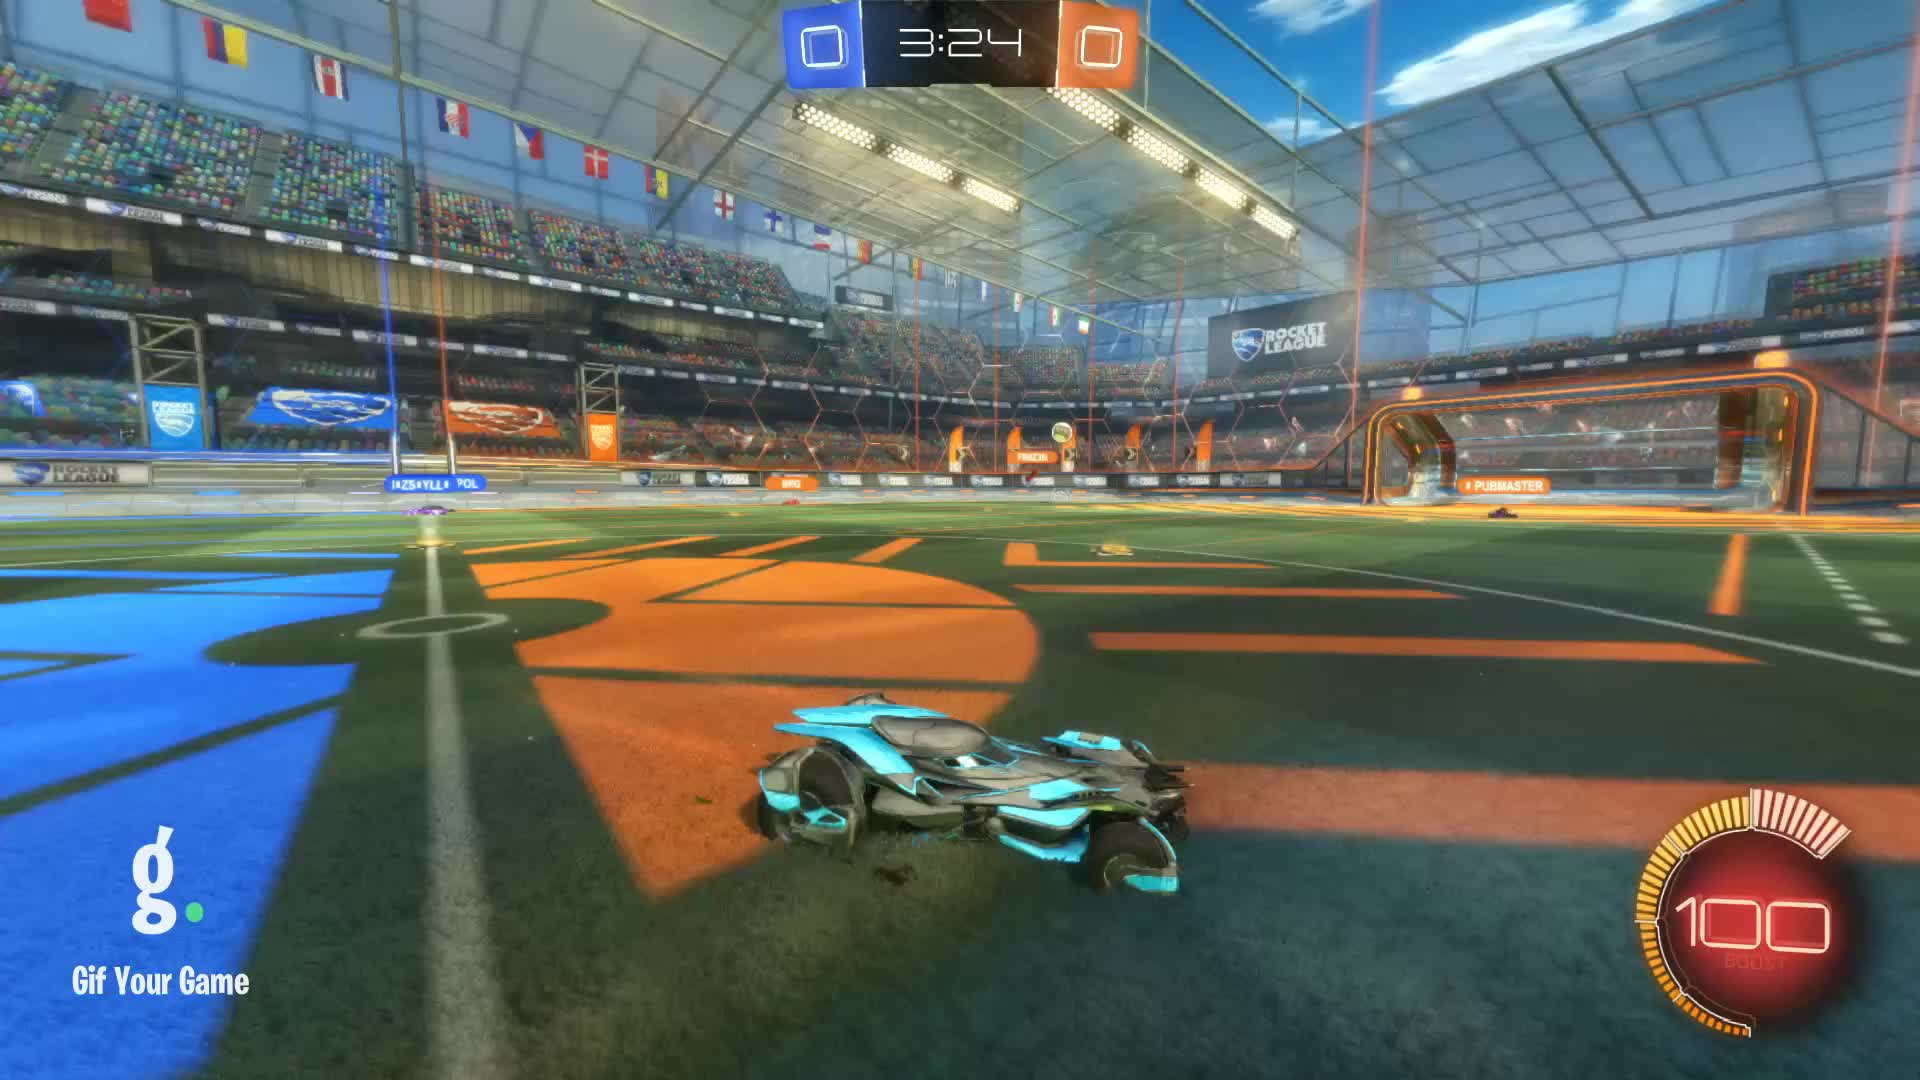 Gif Your Game, GifYourGame, Goal, Rocket League, RocketLeague, slobb on my knobb, Goal 1: slobb on my knobb GIFs